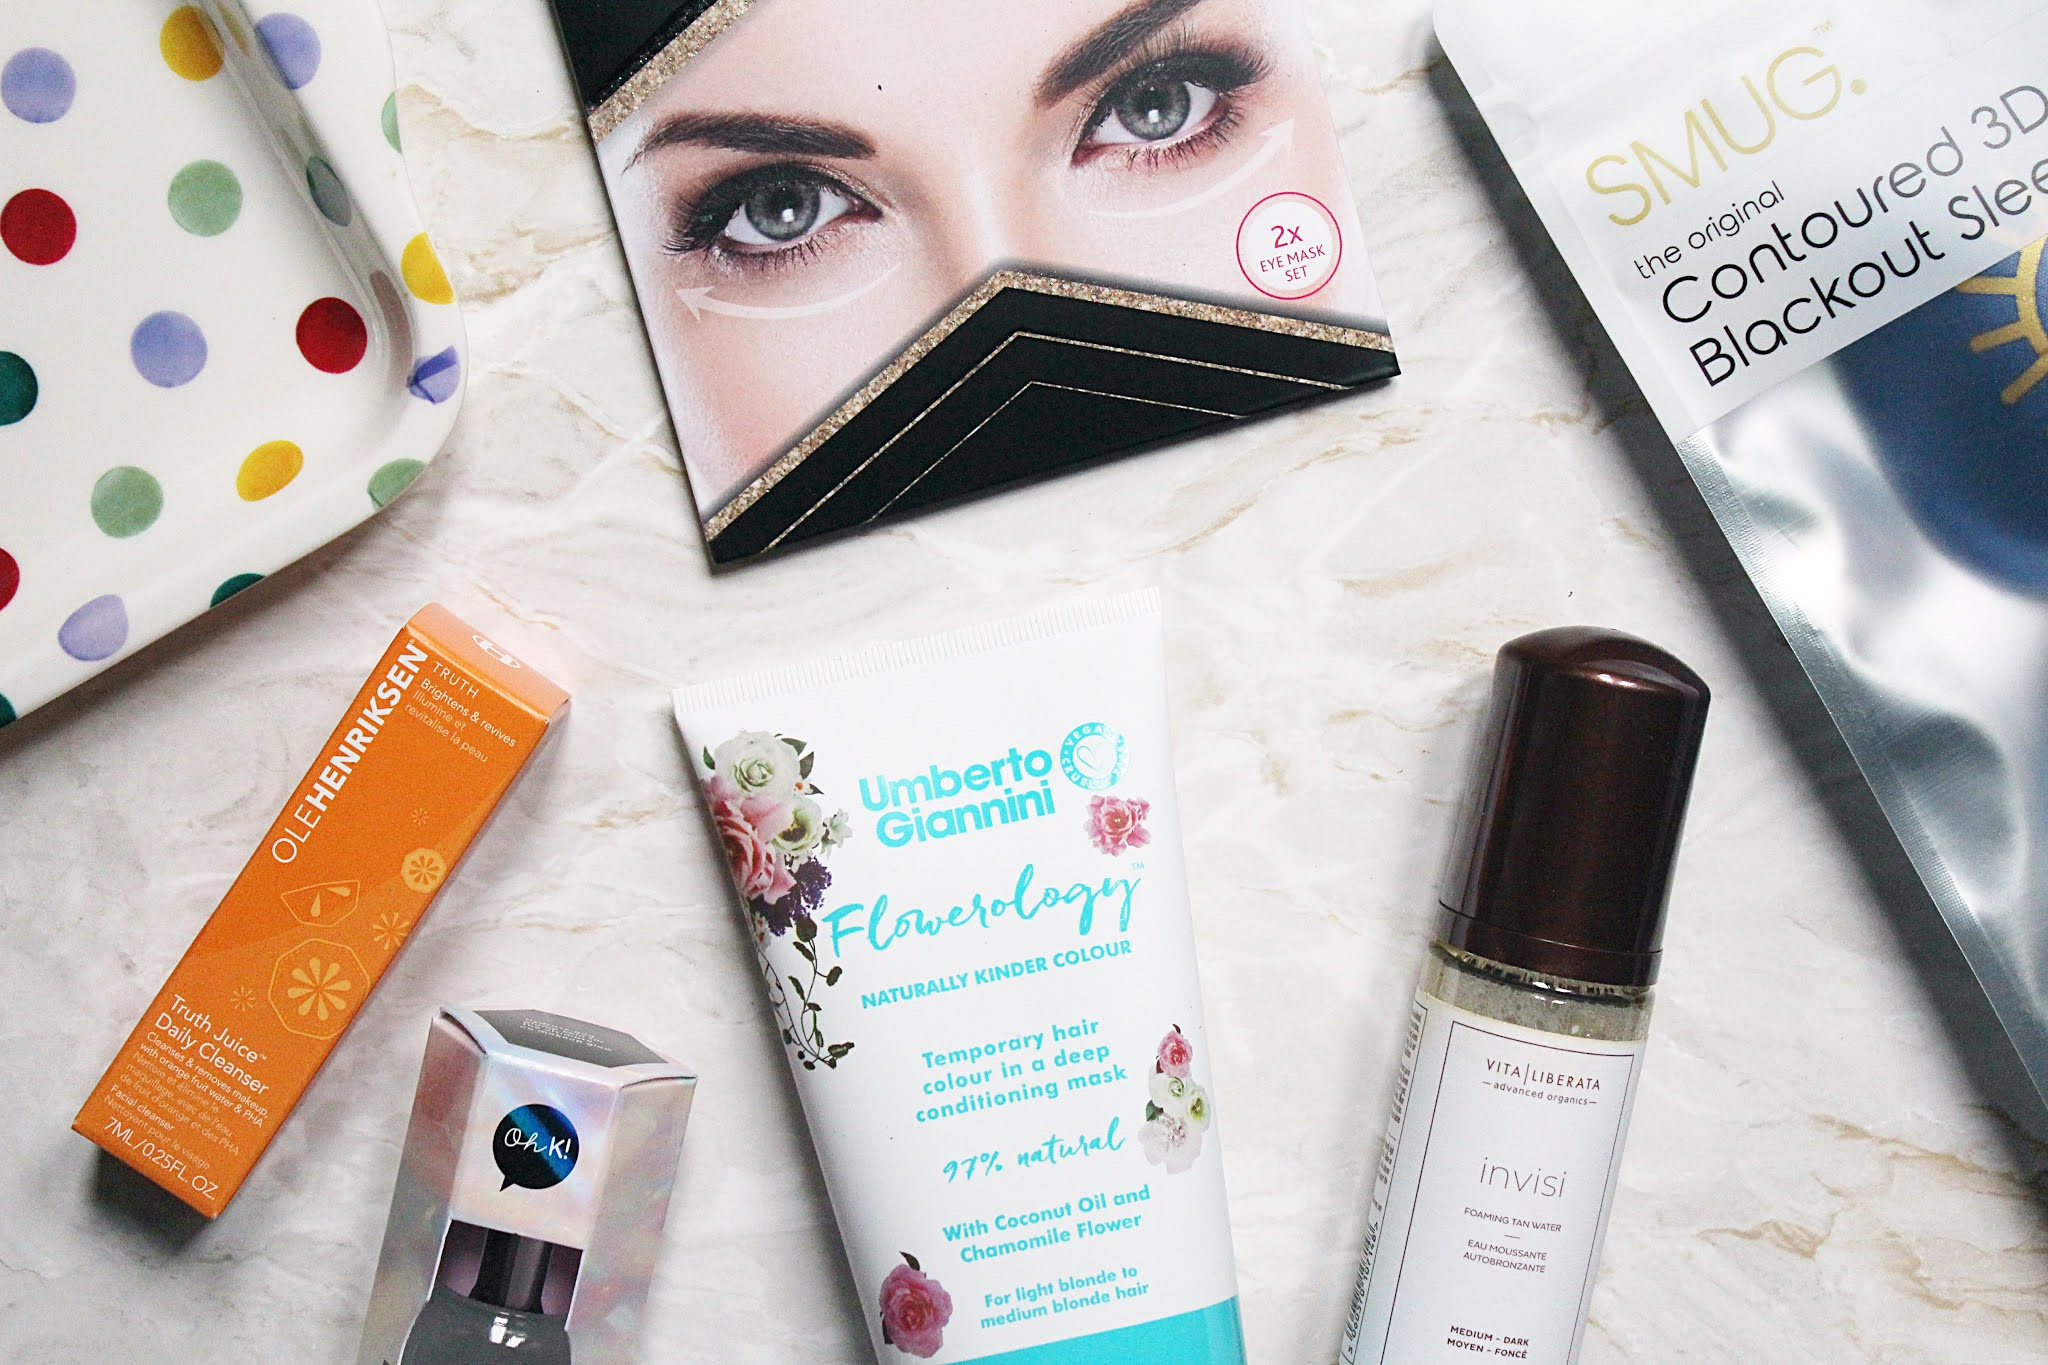 Latest in Beauty January 2021 Box